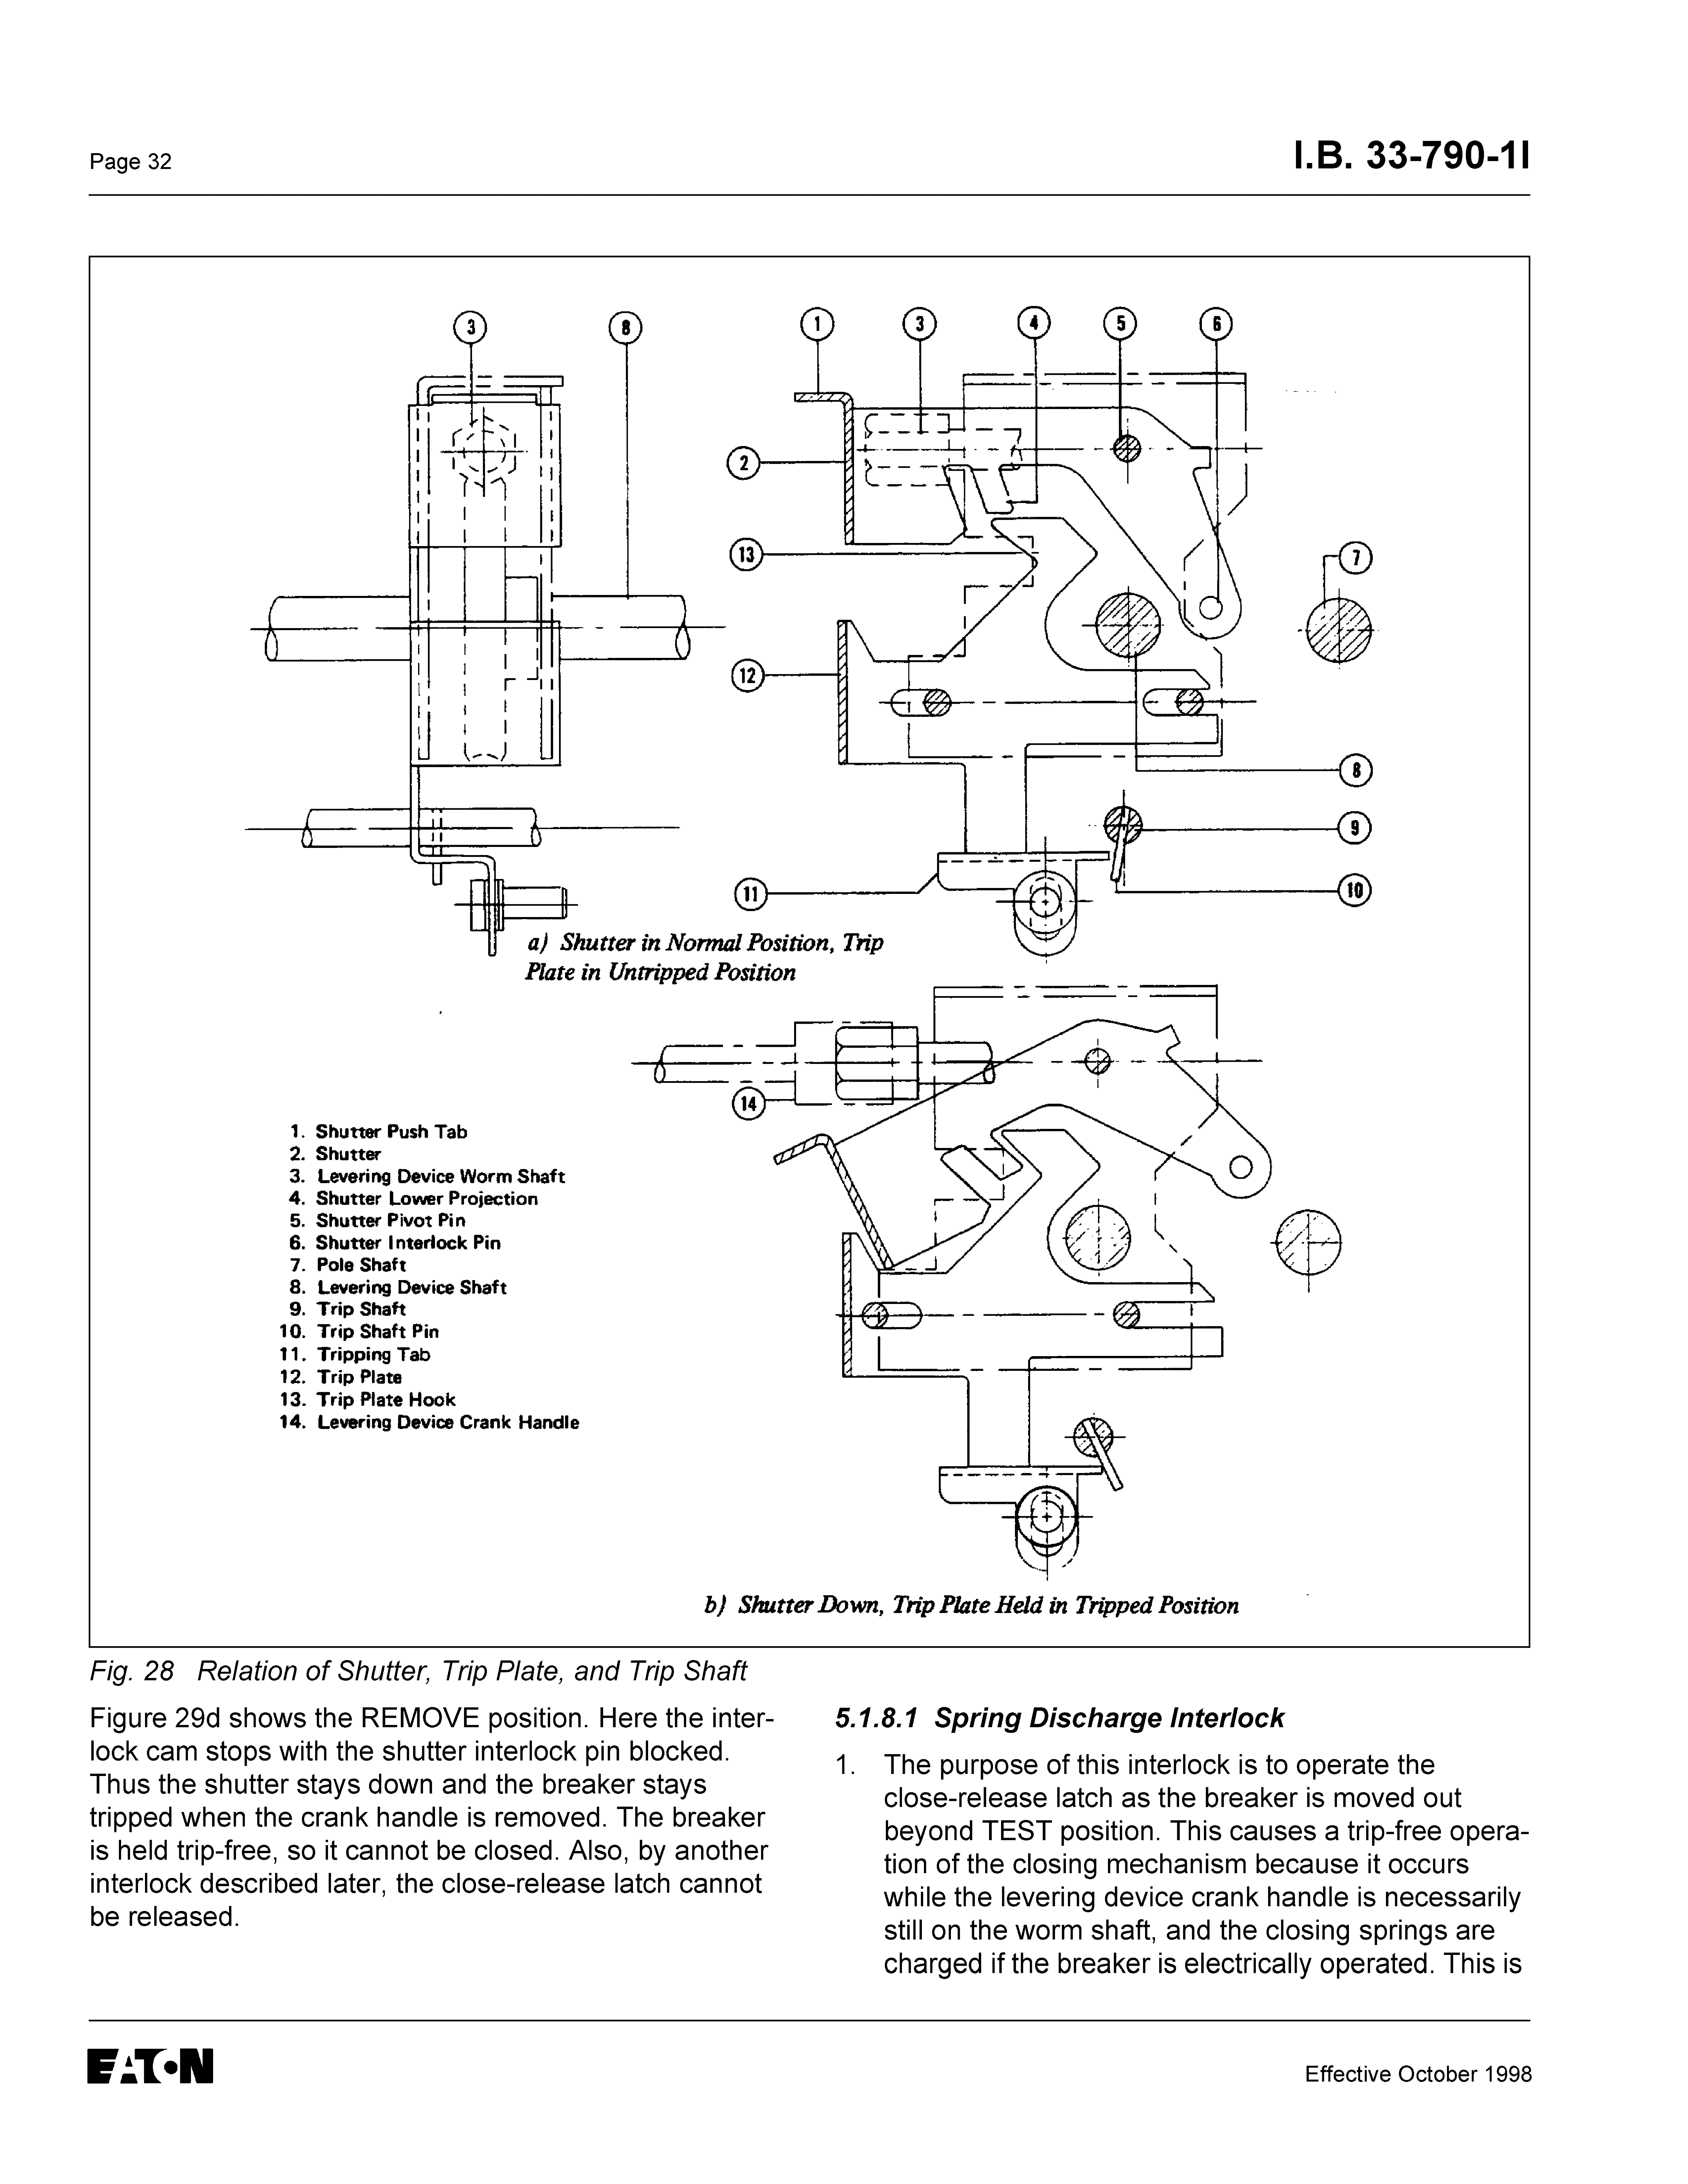 Instructions For Low Voltage Power Circuit Breakers Types Ds And Dsl Tripping Breaker Dishwasher Keeps Page 32 18 33 790 11 8 I L C